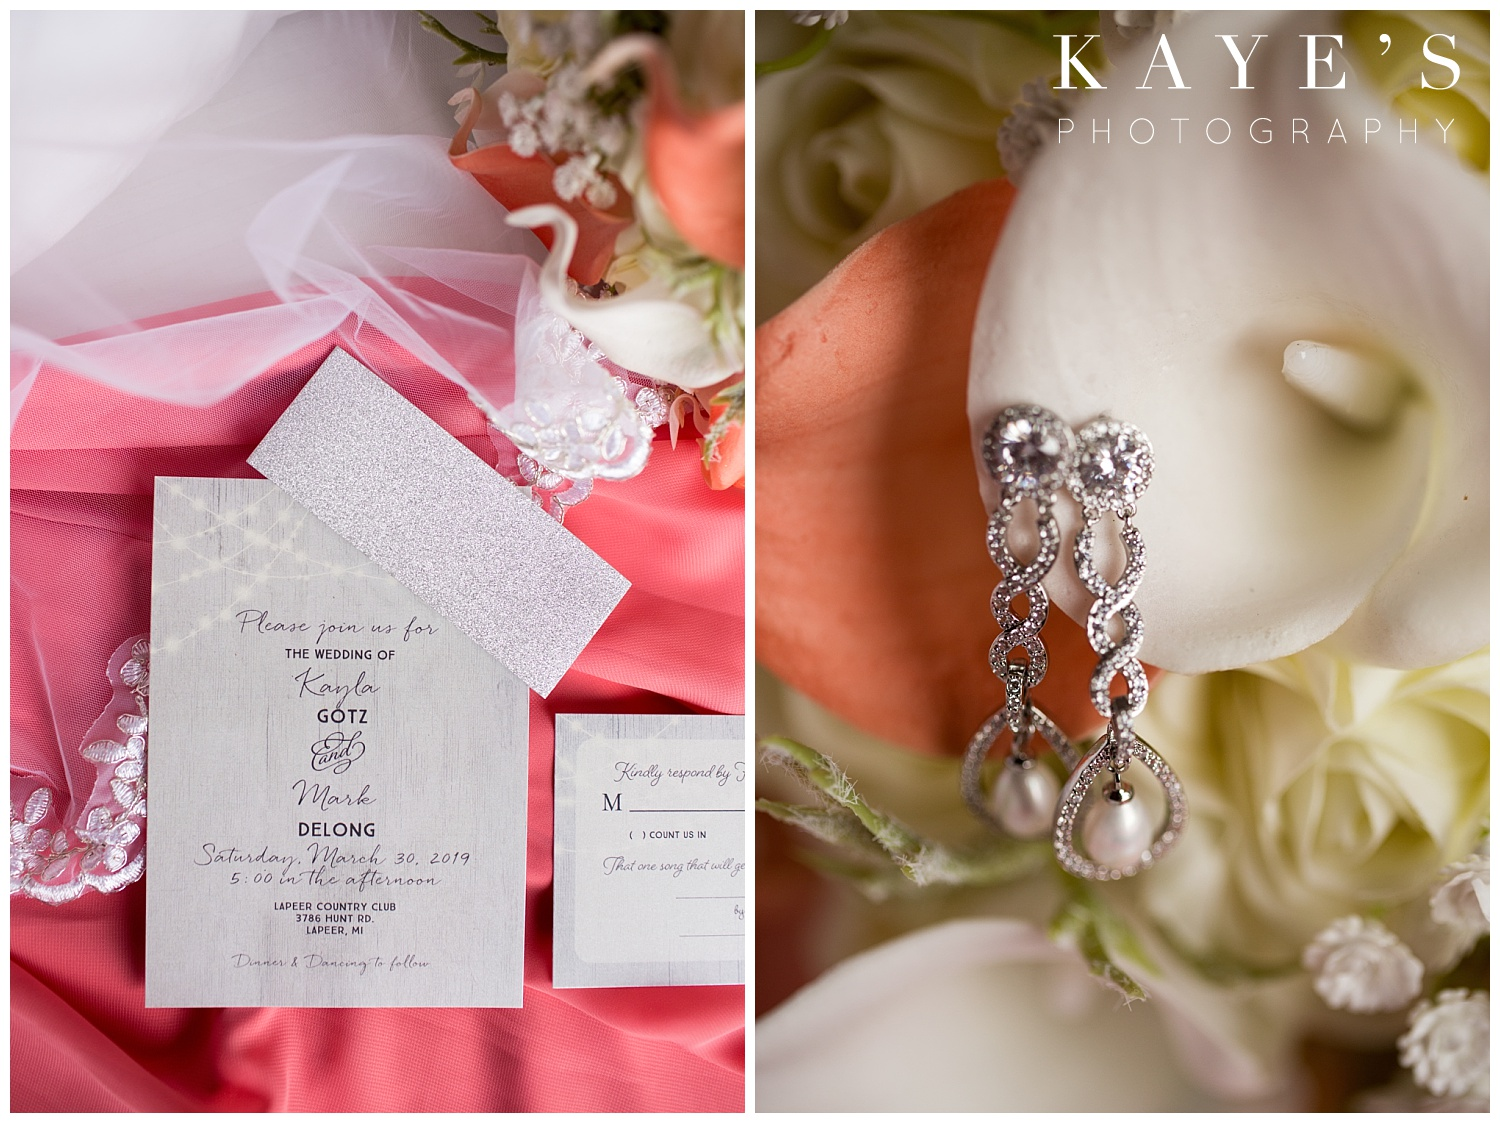 Bride details in lapeer country club captured by kaye's photography